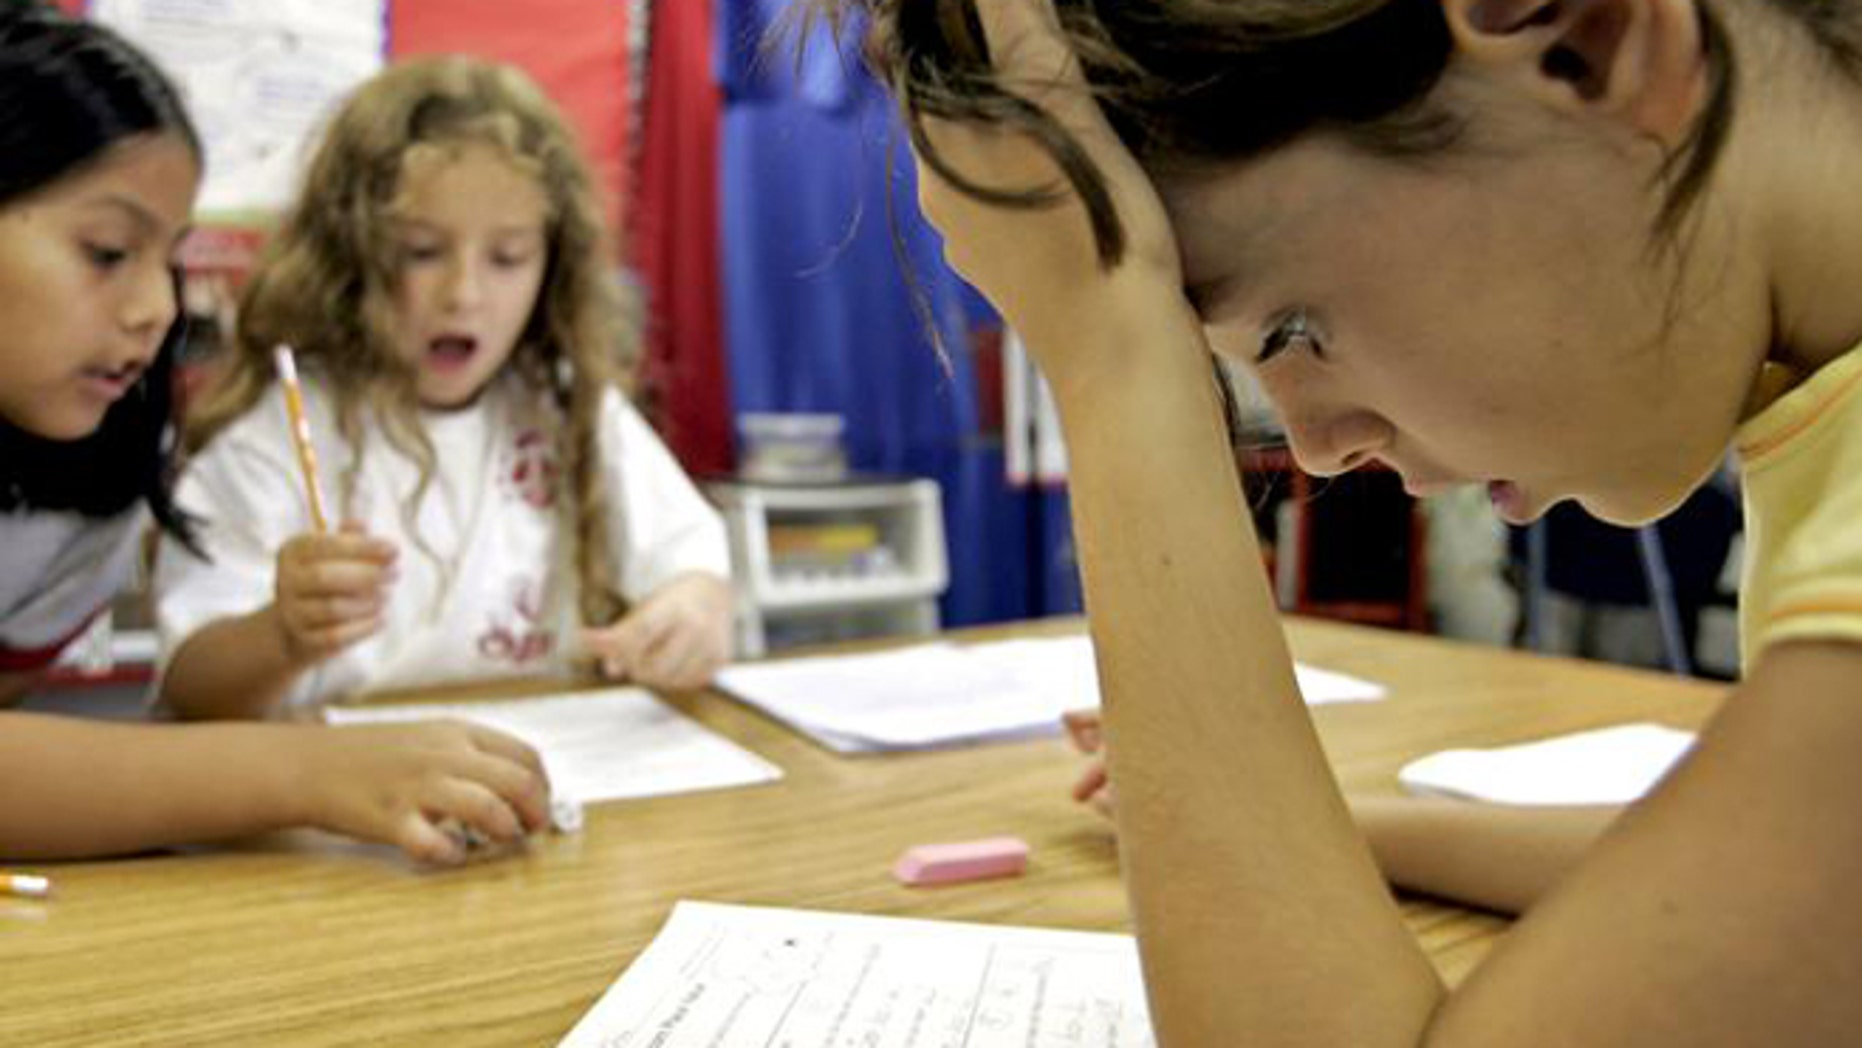 Third-grade student Georgia Allin, right, participates in a math exercise with classmates.